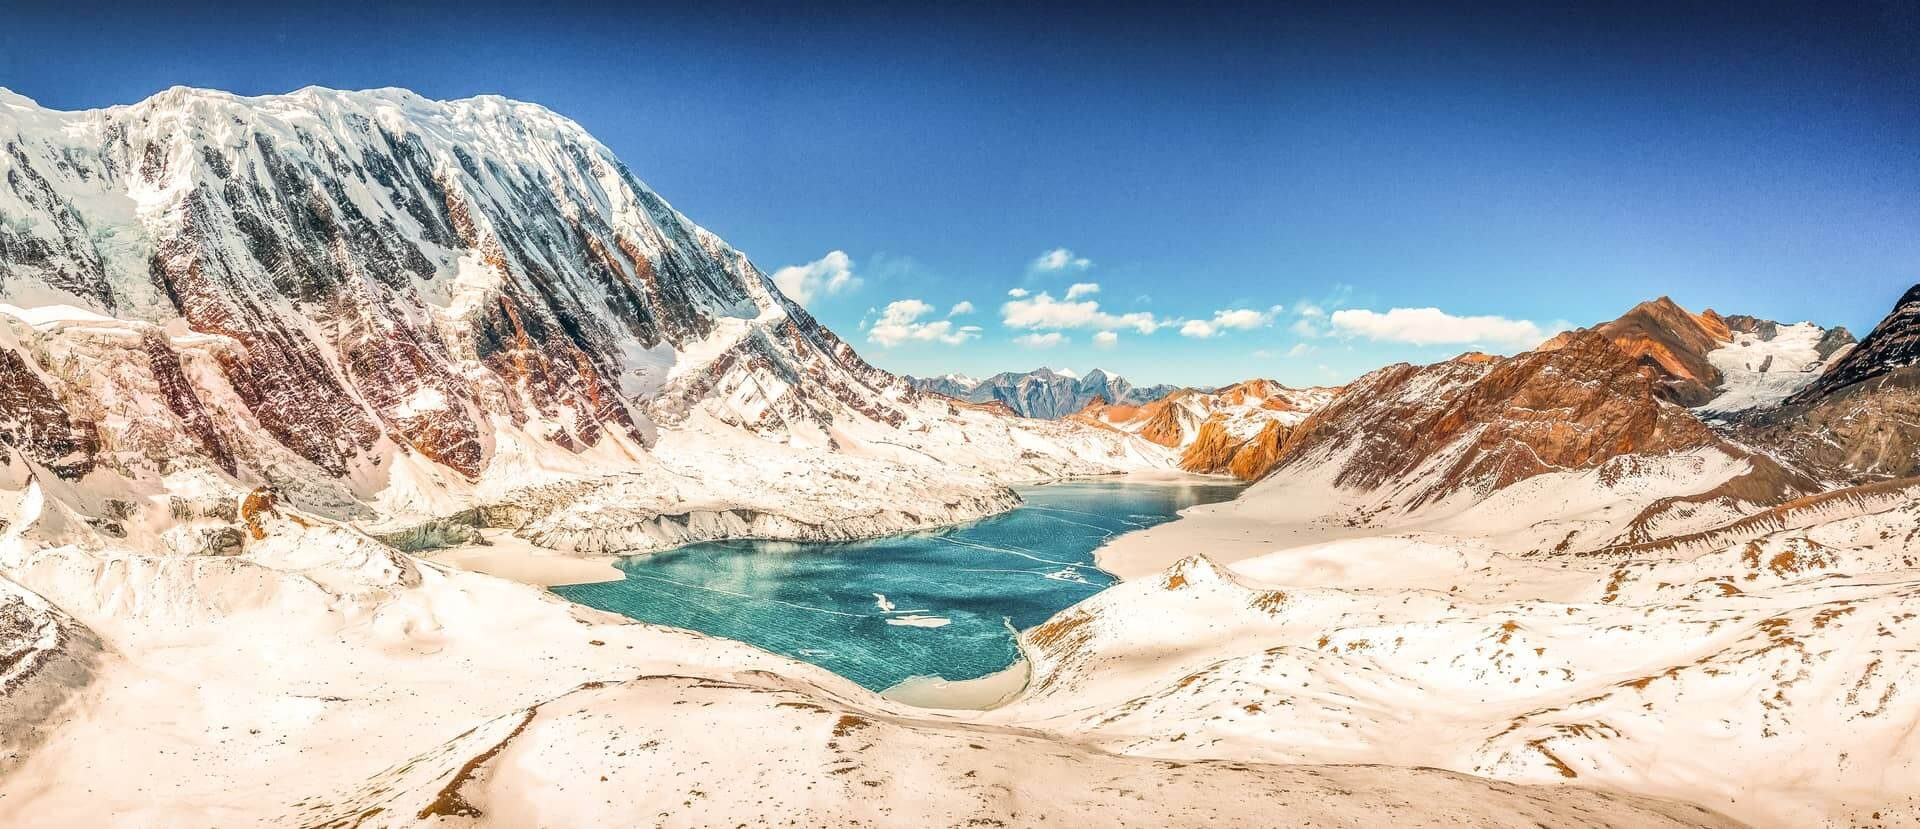 Annapurna Circuit Trek via Tilicho Lake